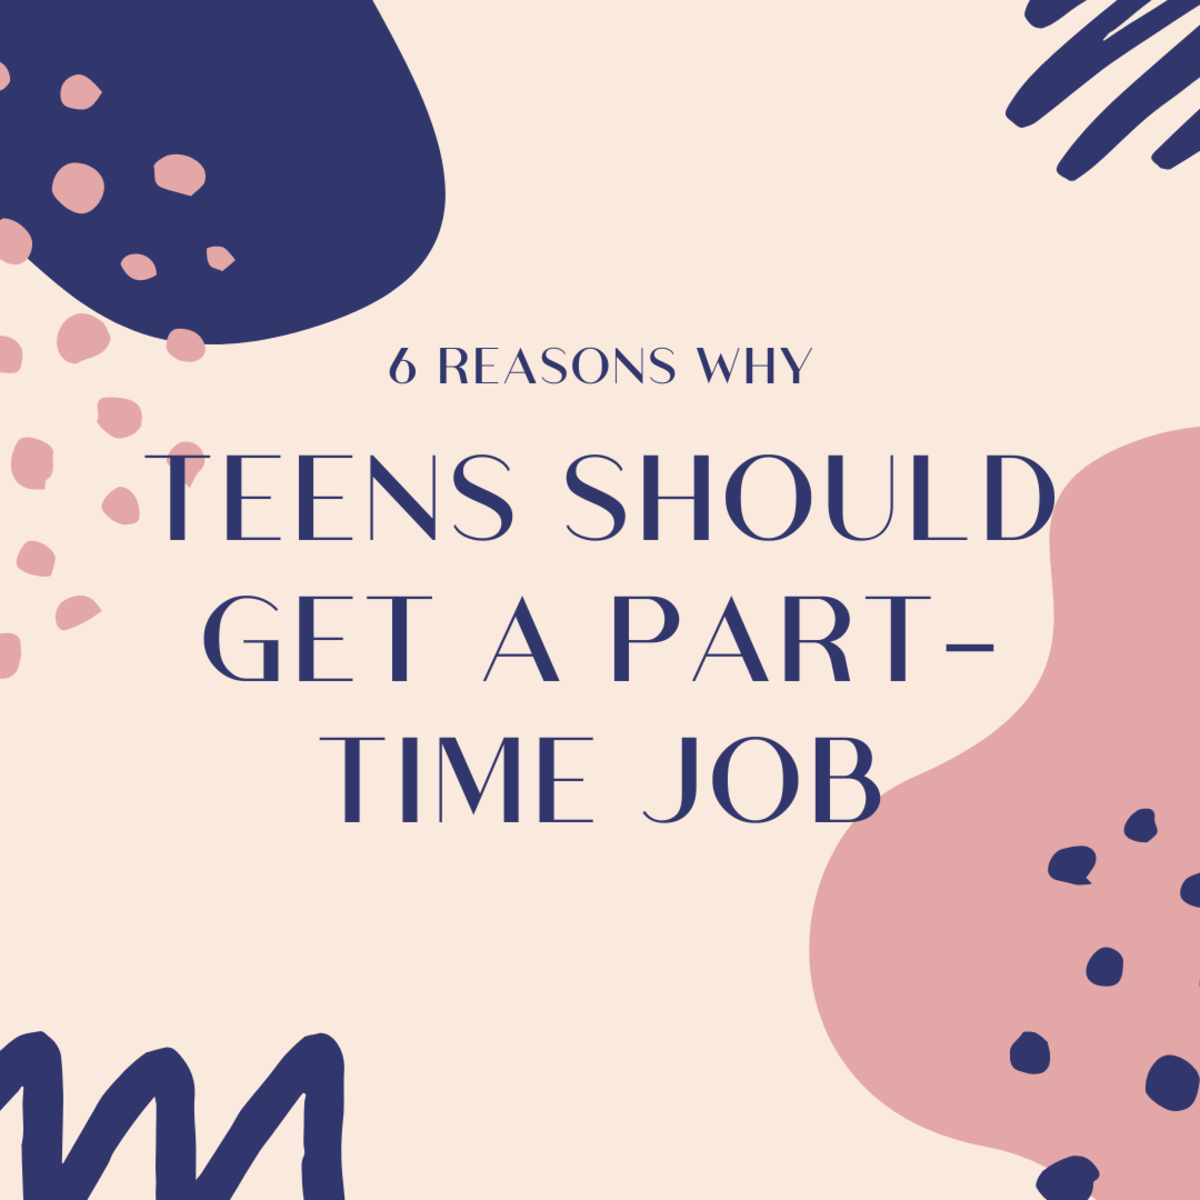 Read on for six reasons why teens should get a part-time job!